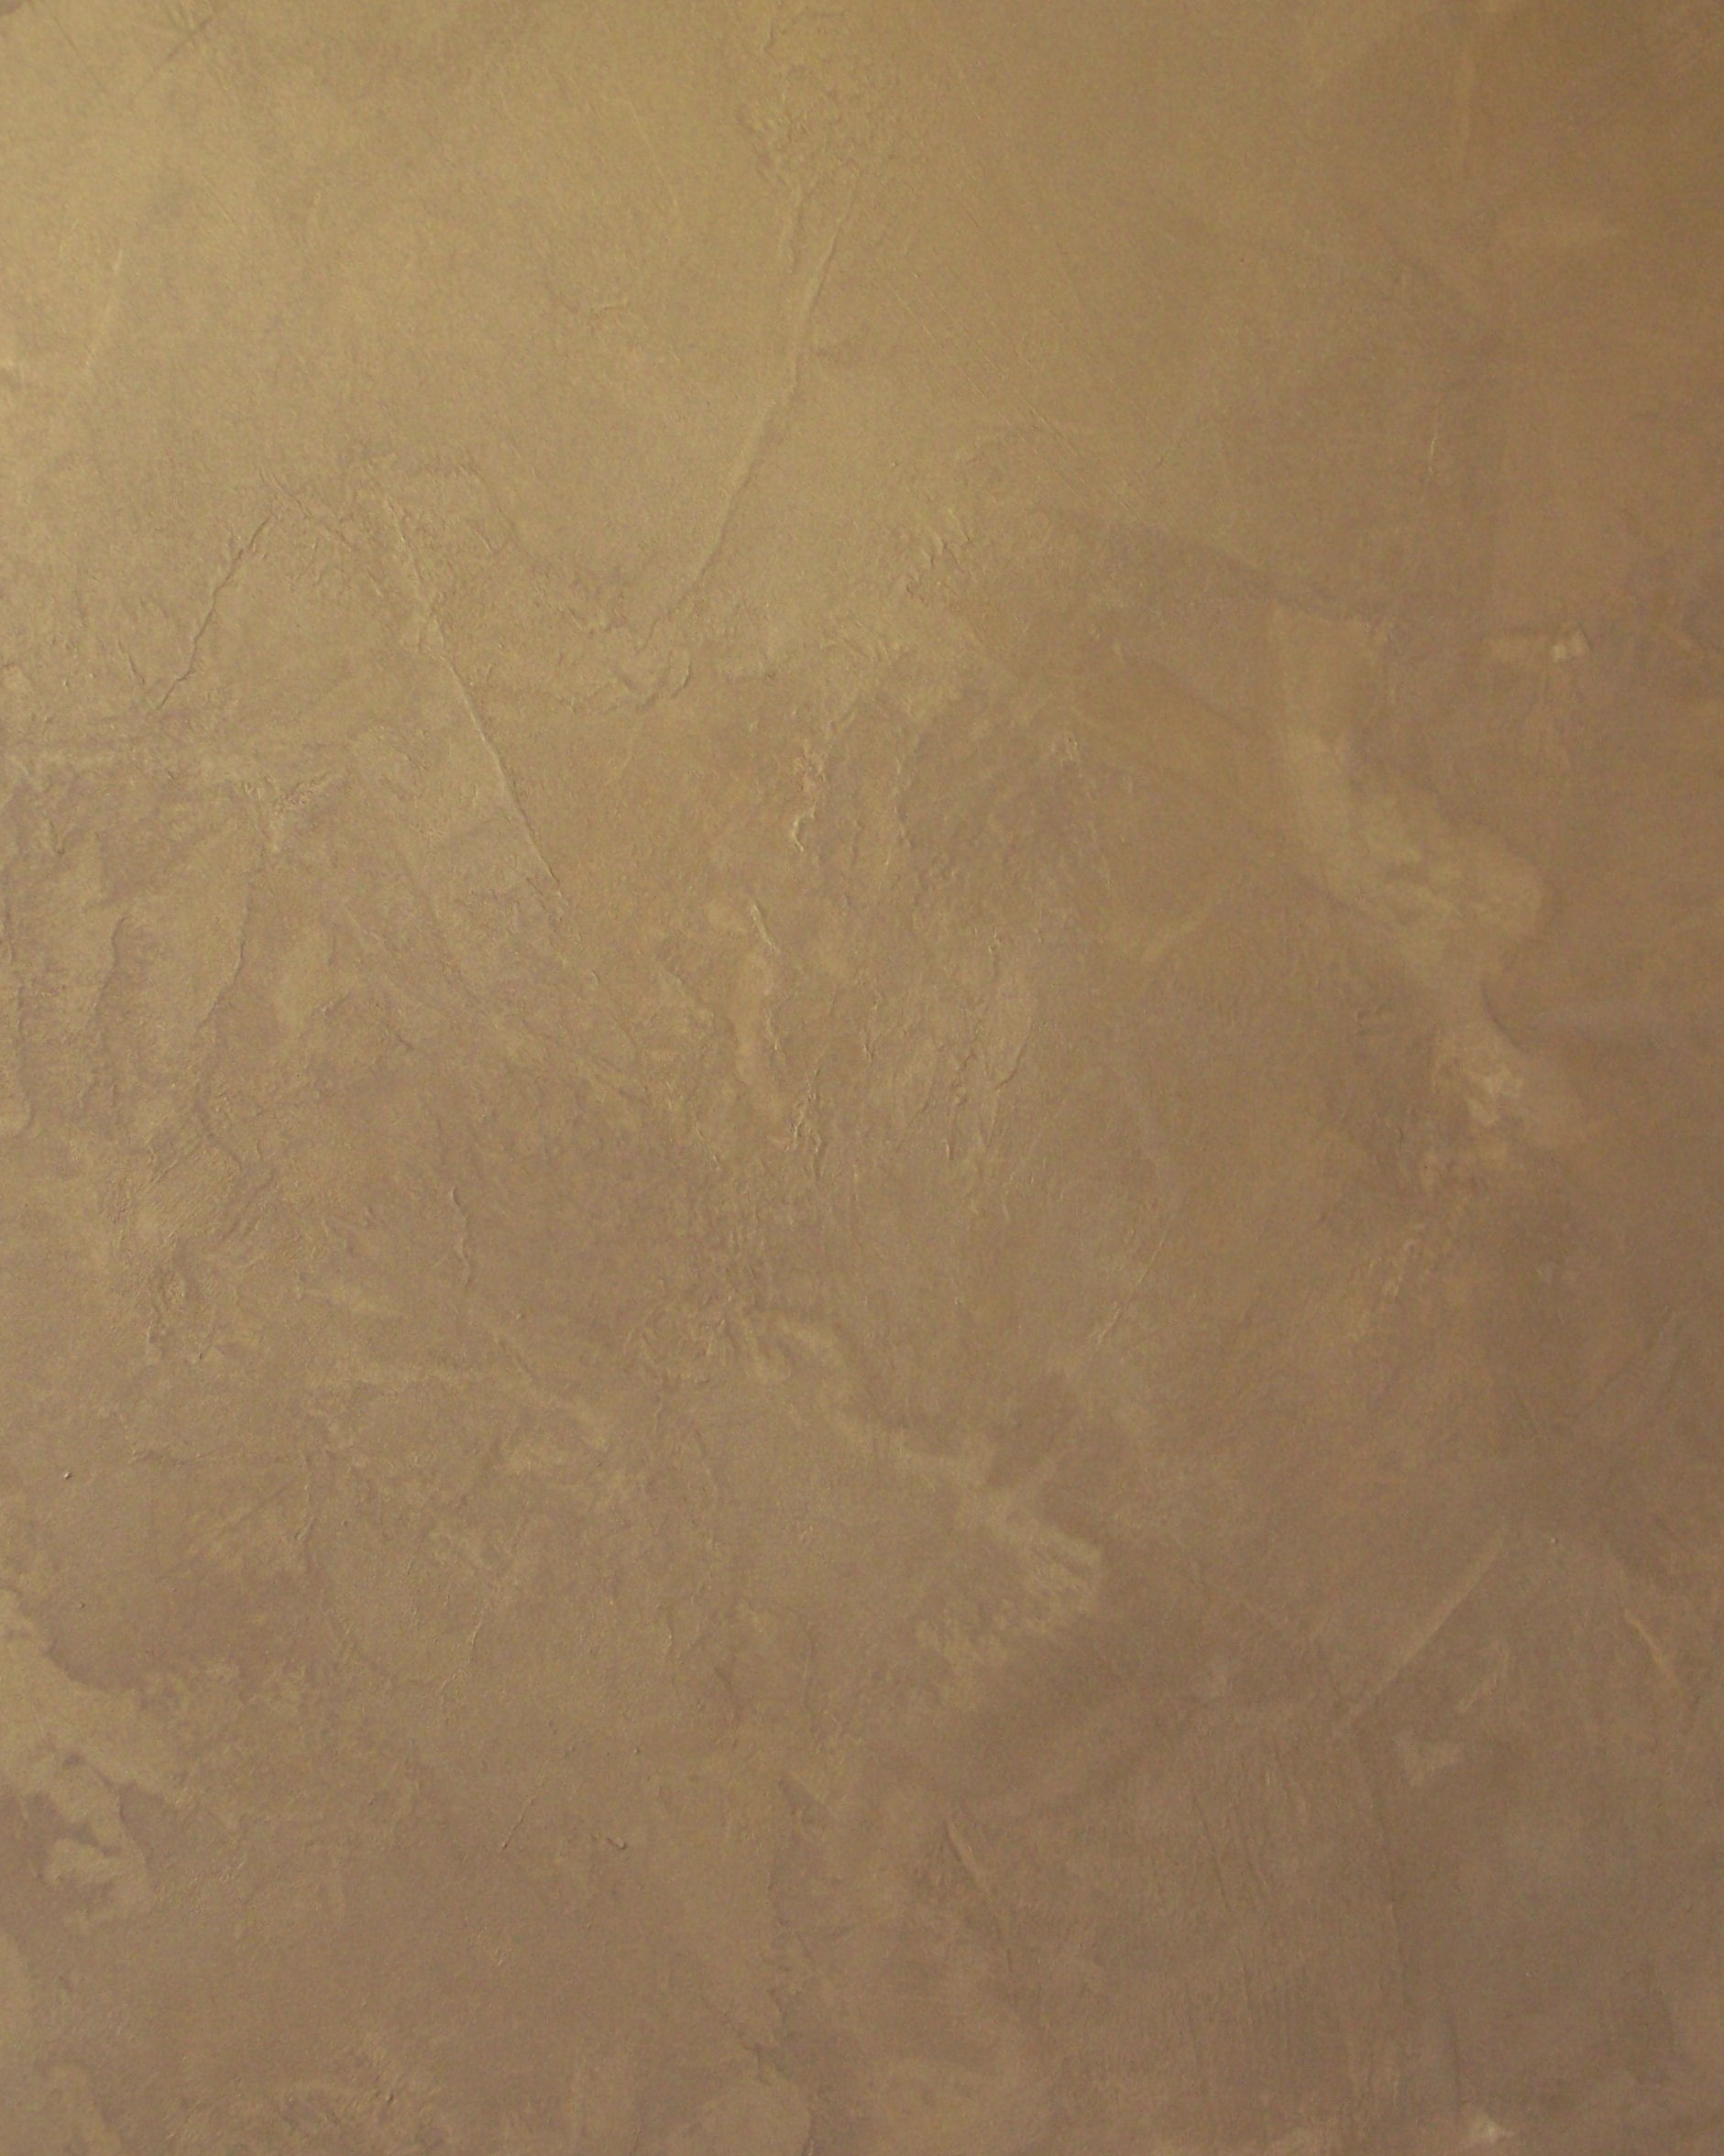 Unique Finishes sacramento Venetian Plaster faux paint wall samples (7)